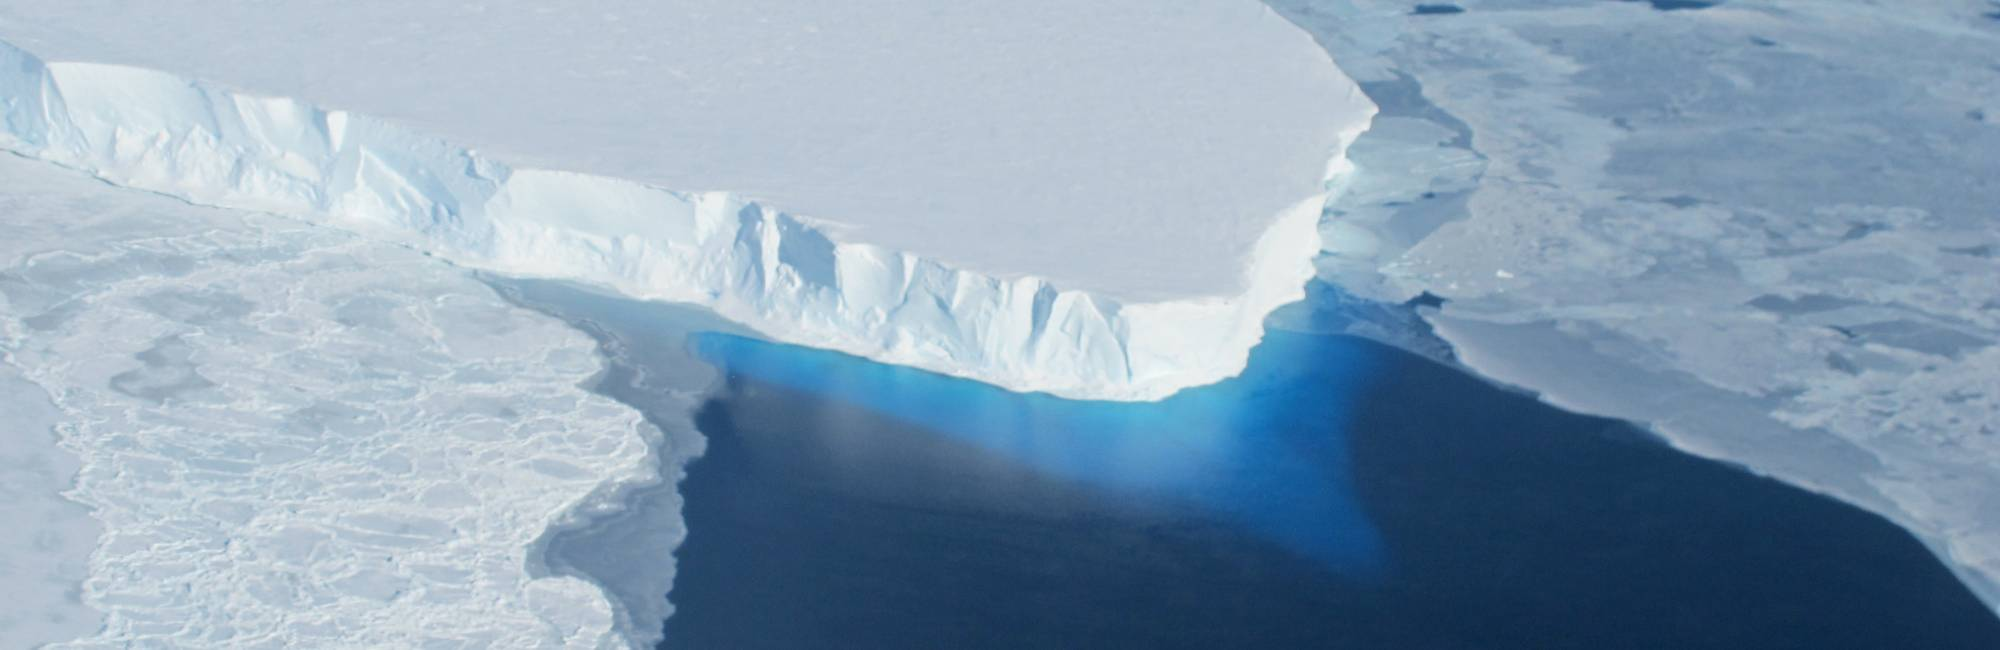 ice shelf extending into water